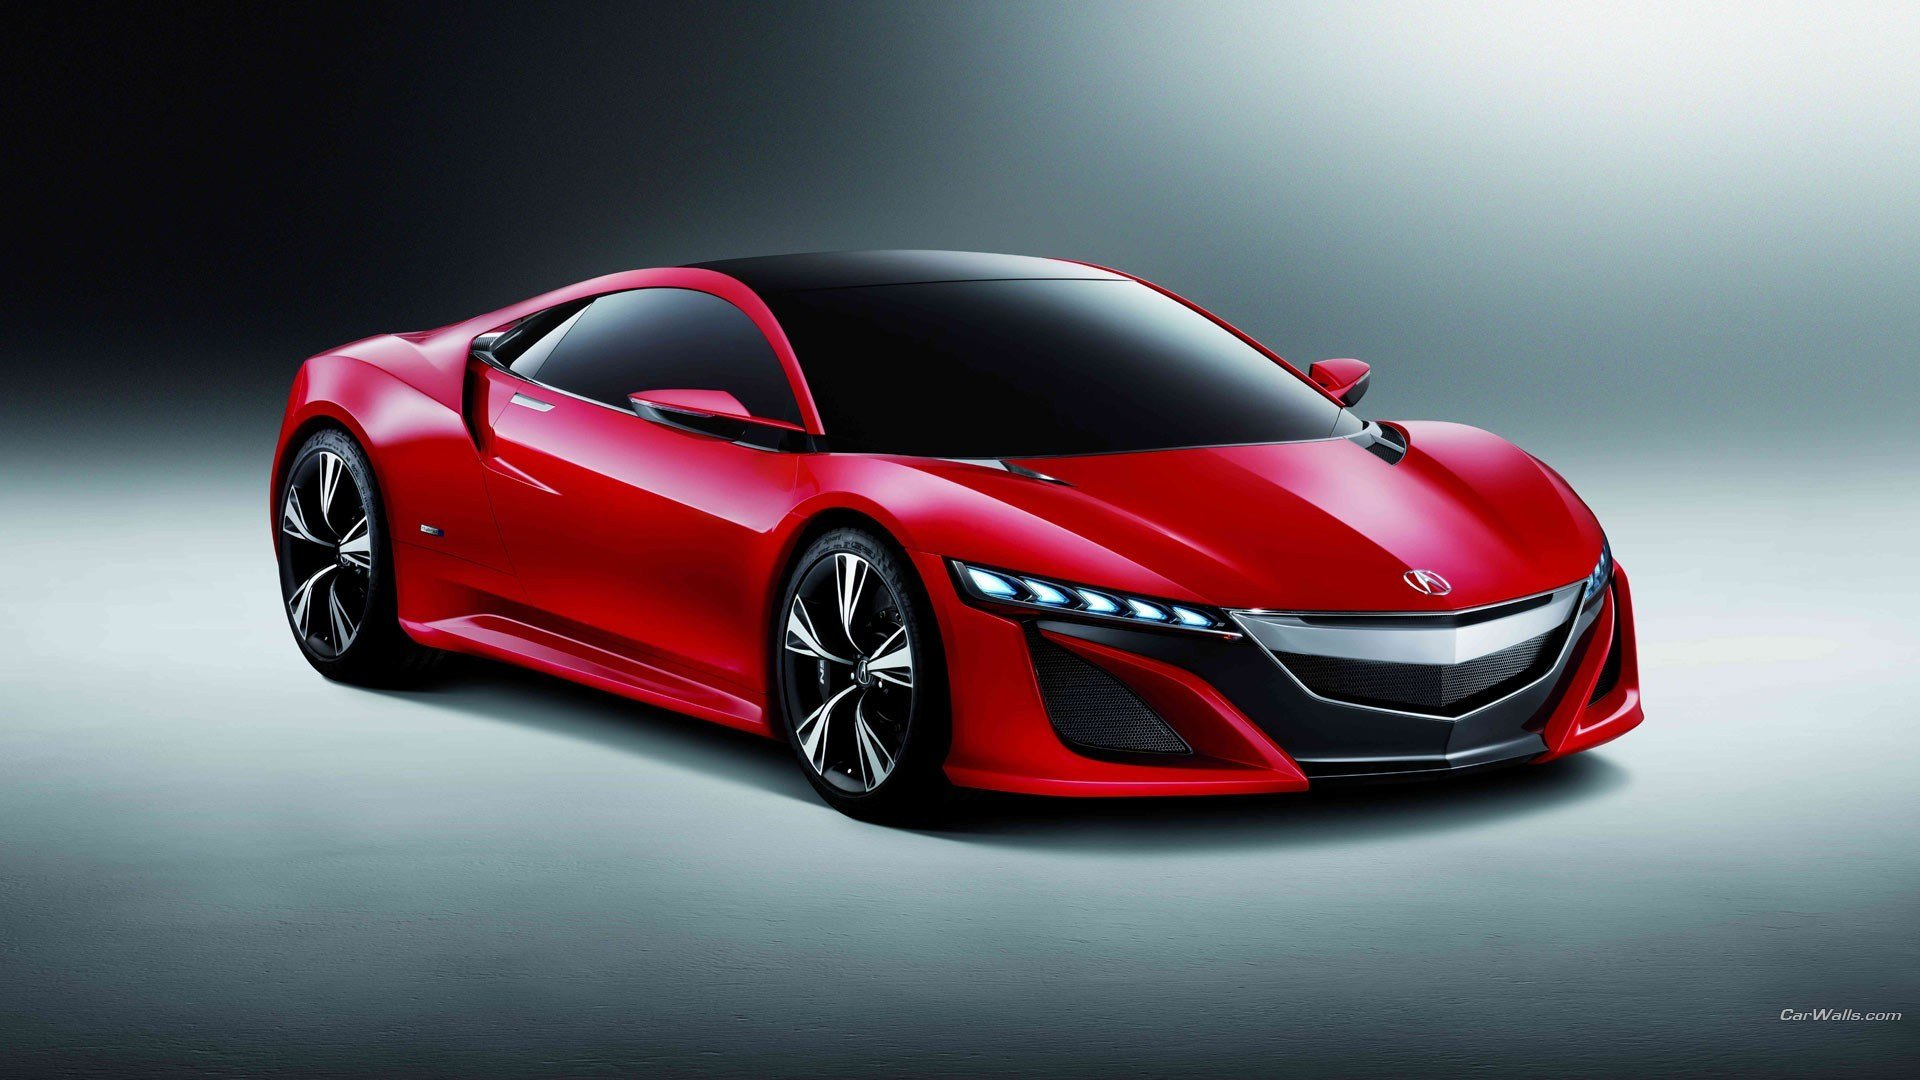 Latest Acura Acura Nsx Car Red Cars Wallpapers Hd Desktop Free Download